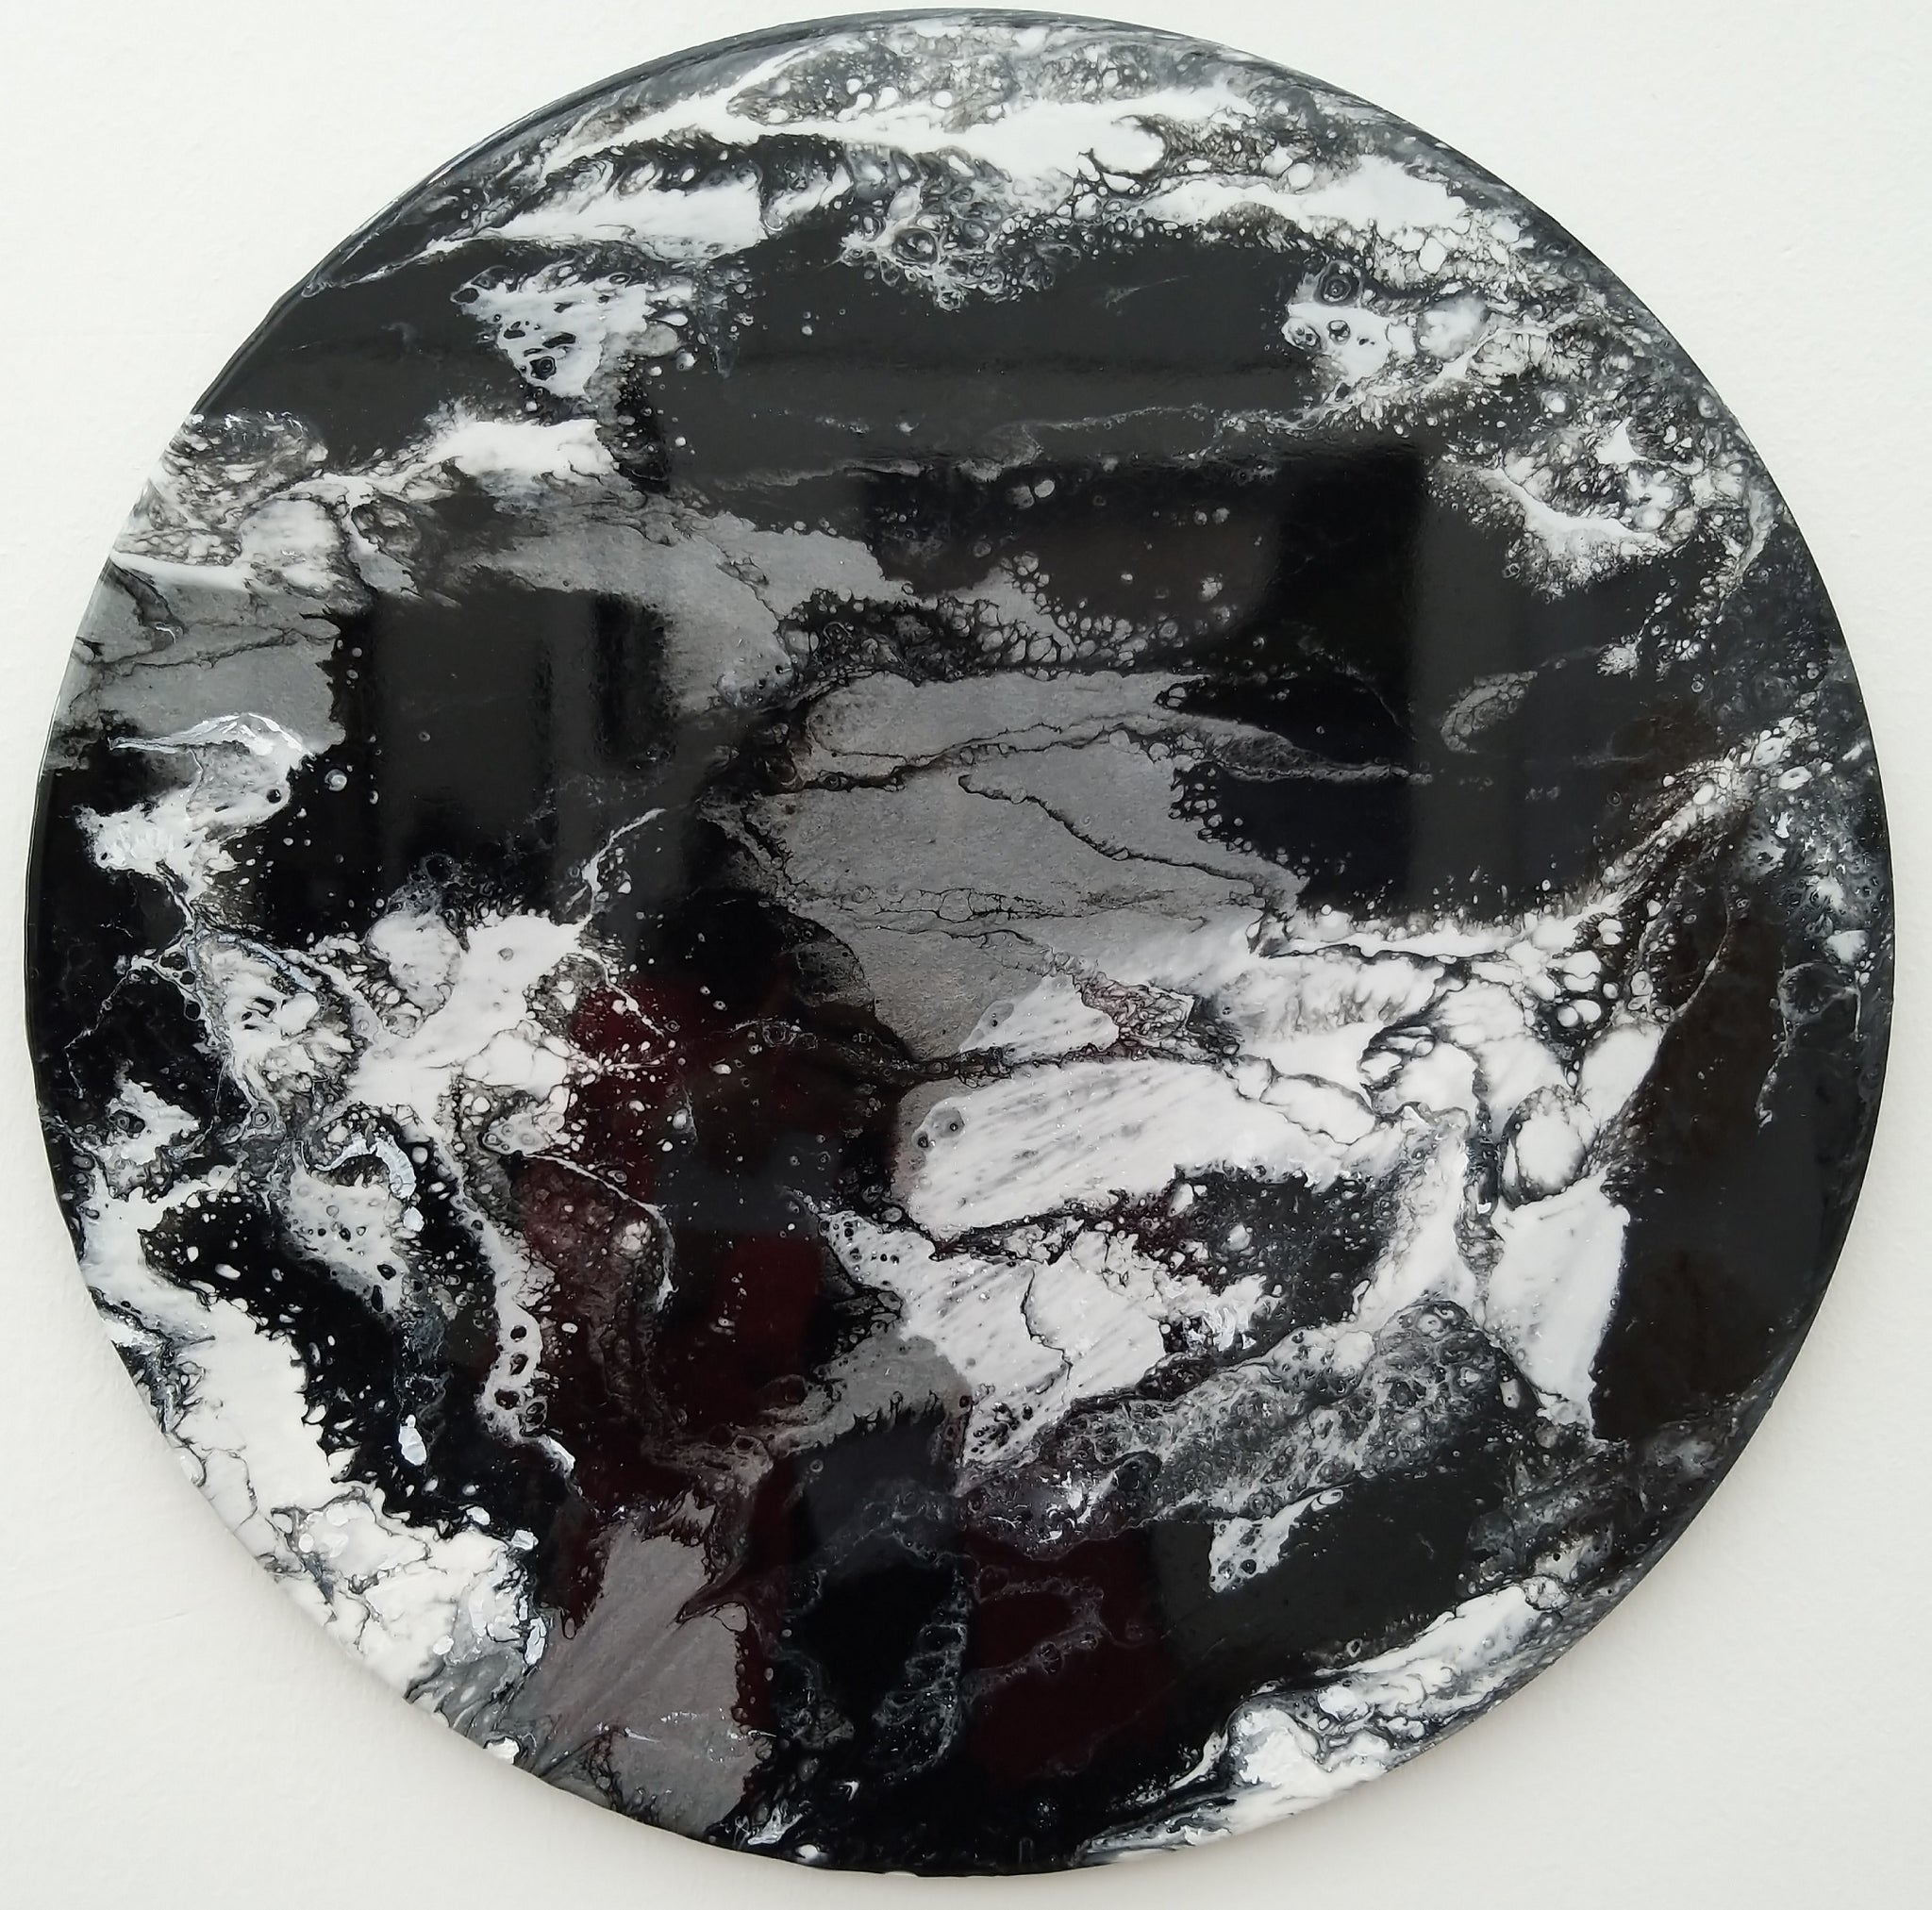 Lunar - Monochrome Circular Abstract Wall Art 50cm